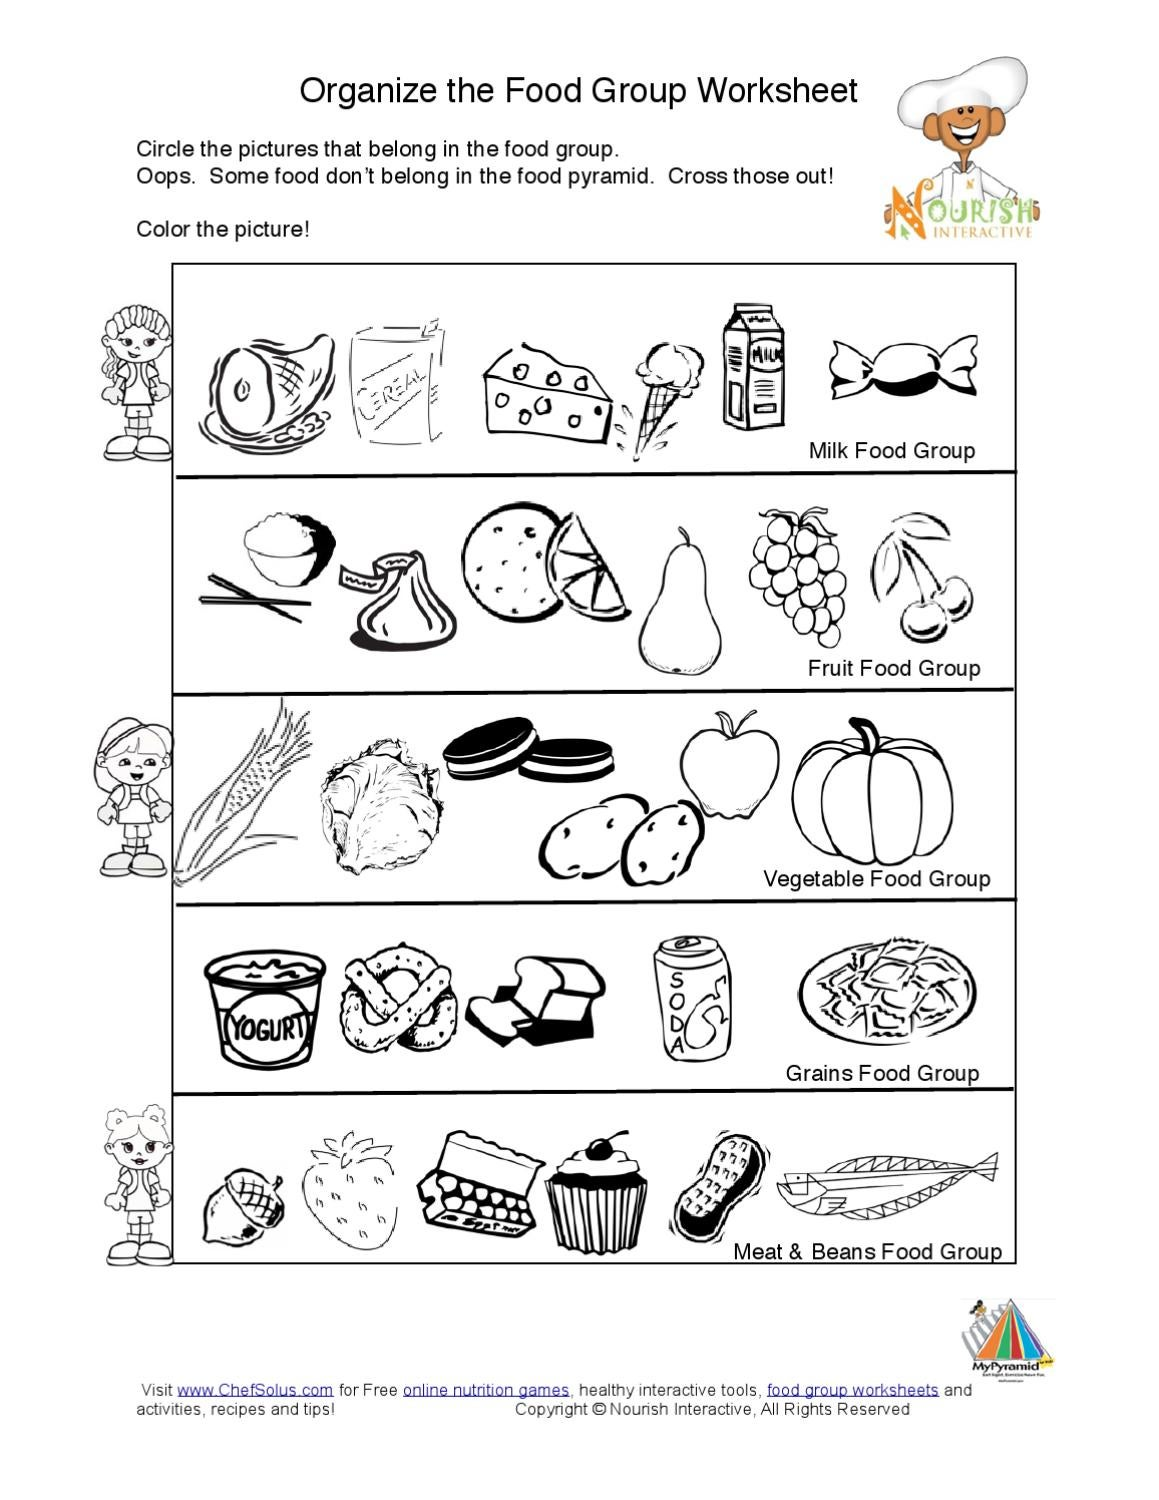 Worksheets Elementary Health Worksheets kids food pyramid groups learning nutrition worksheet k 5 elementary school by nieves hita issuu